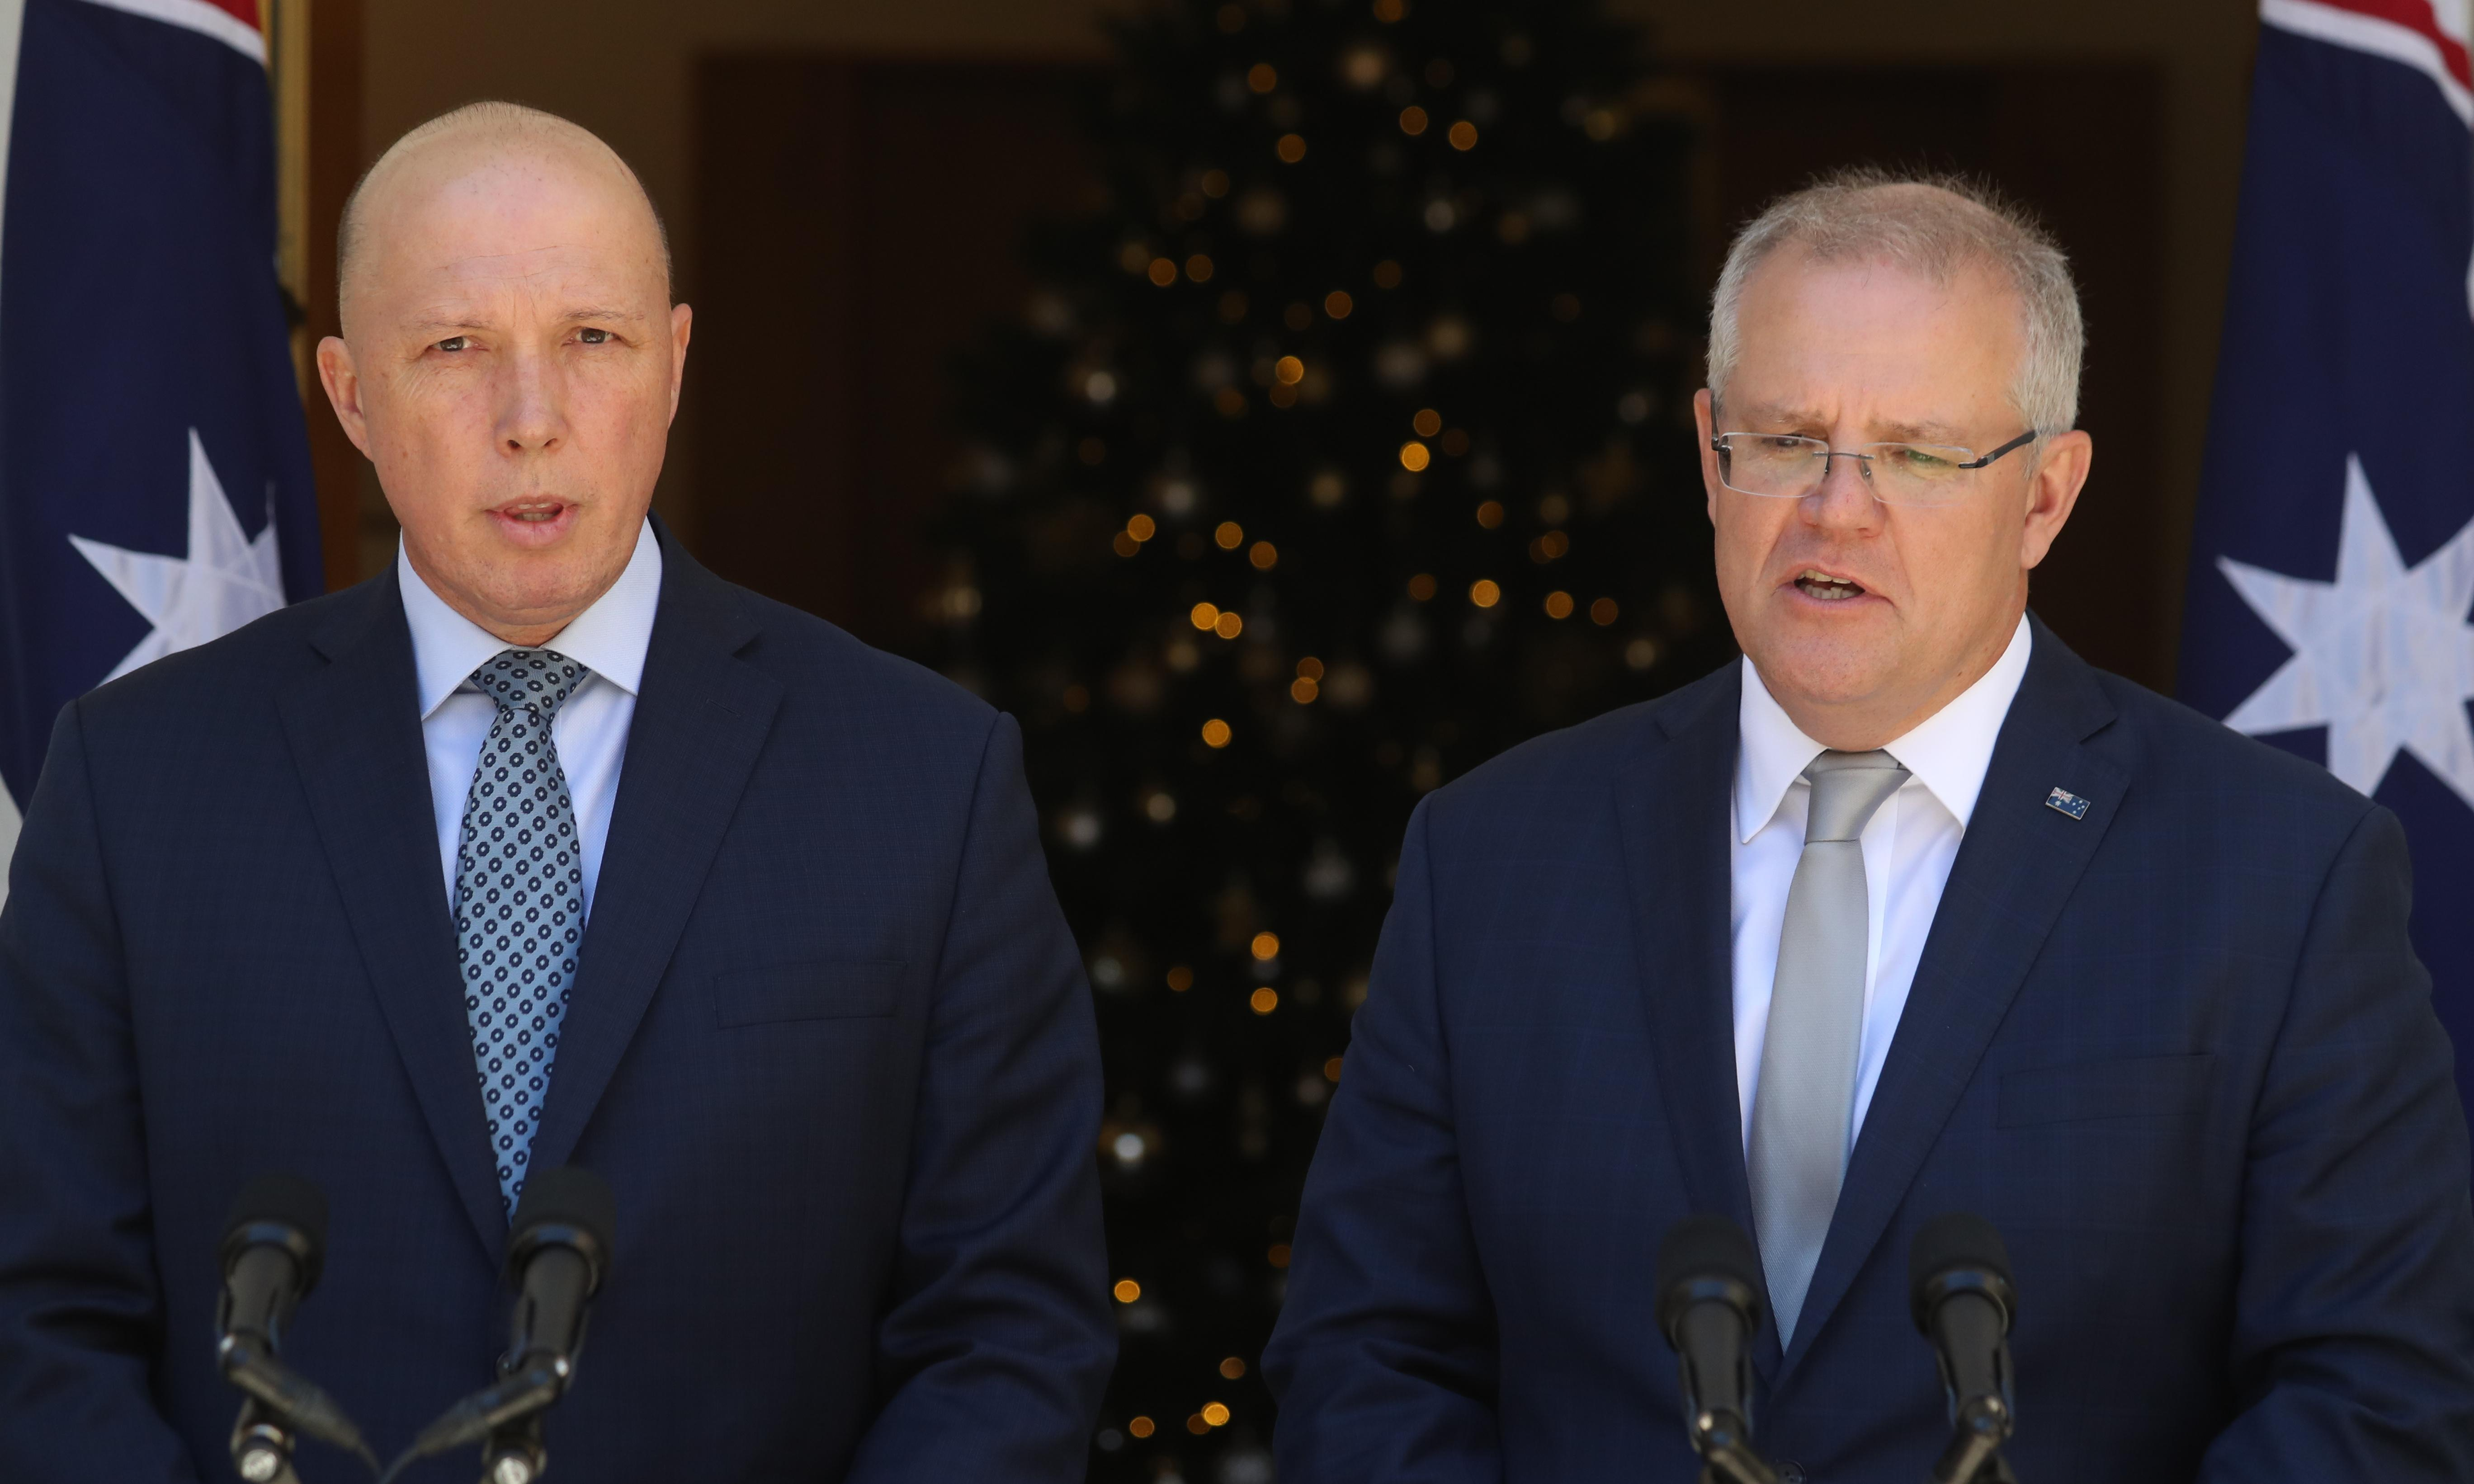 Medevac repeal gives Morrison a political win, but prompts intense moral discomfort